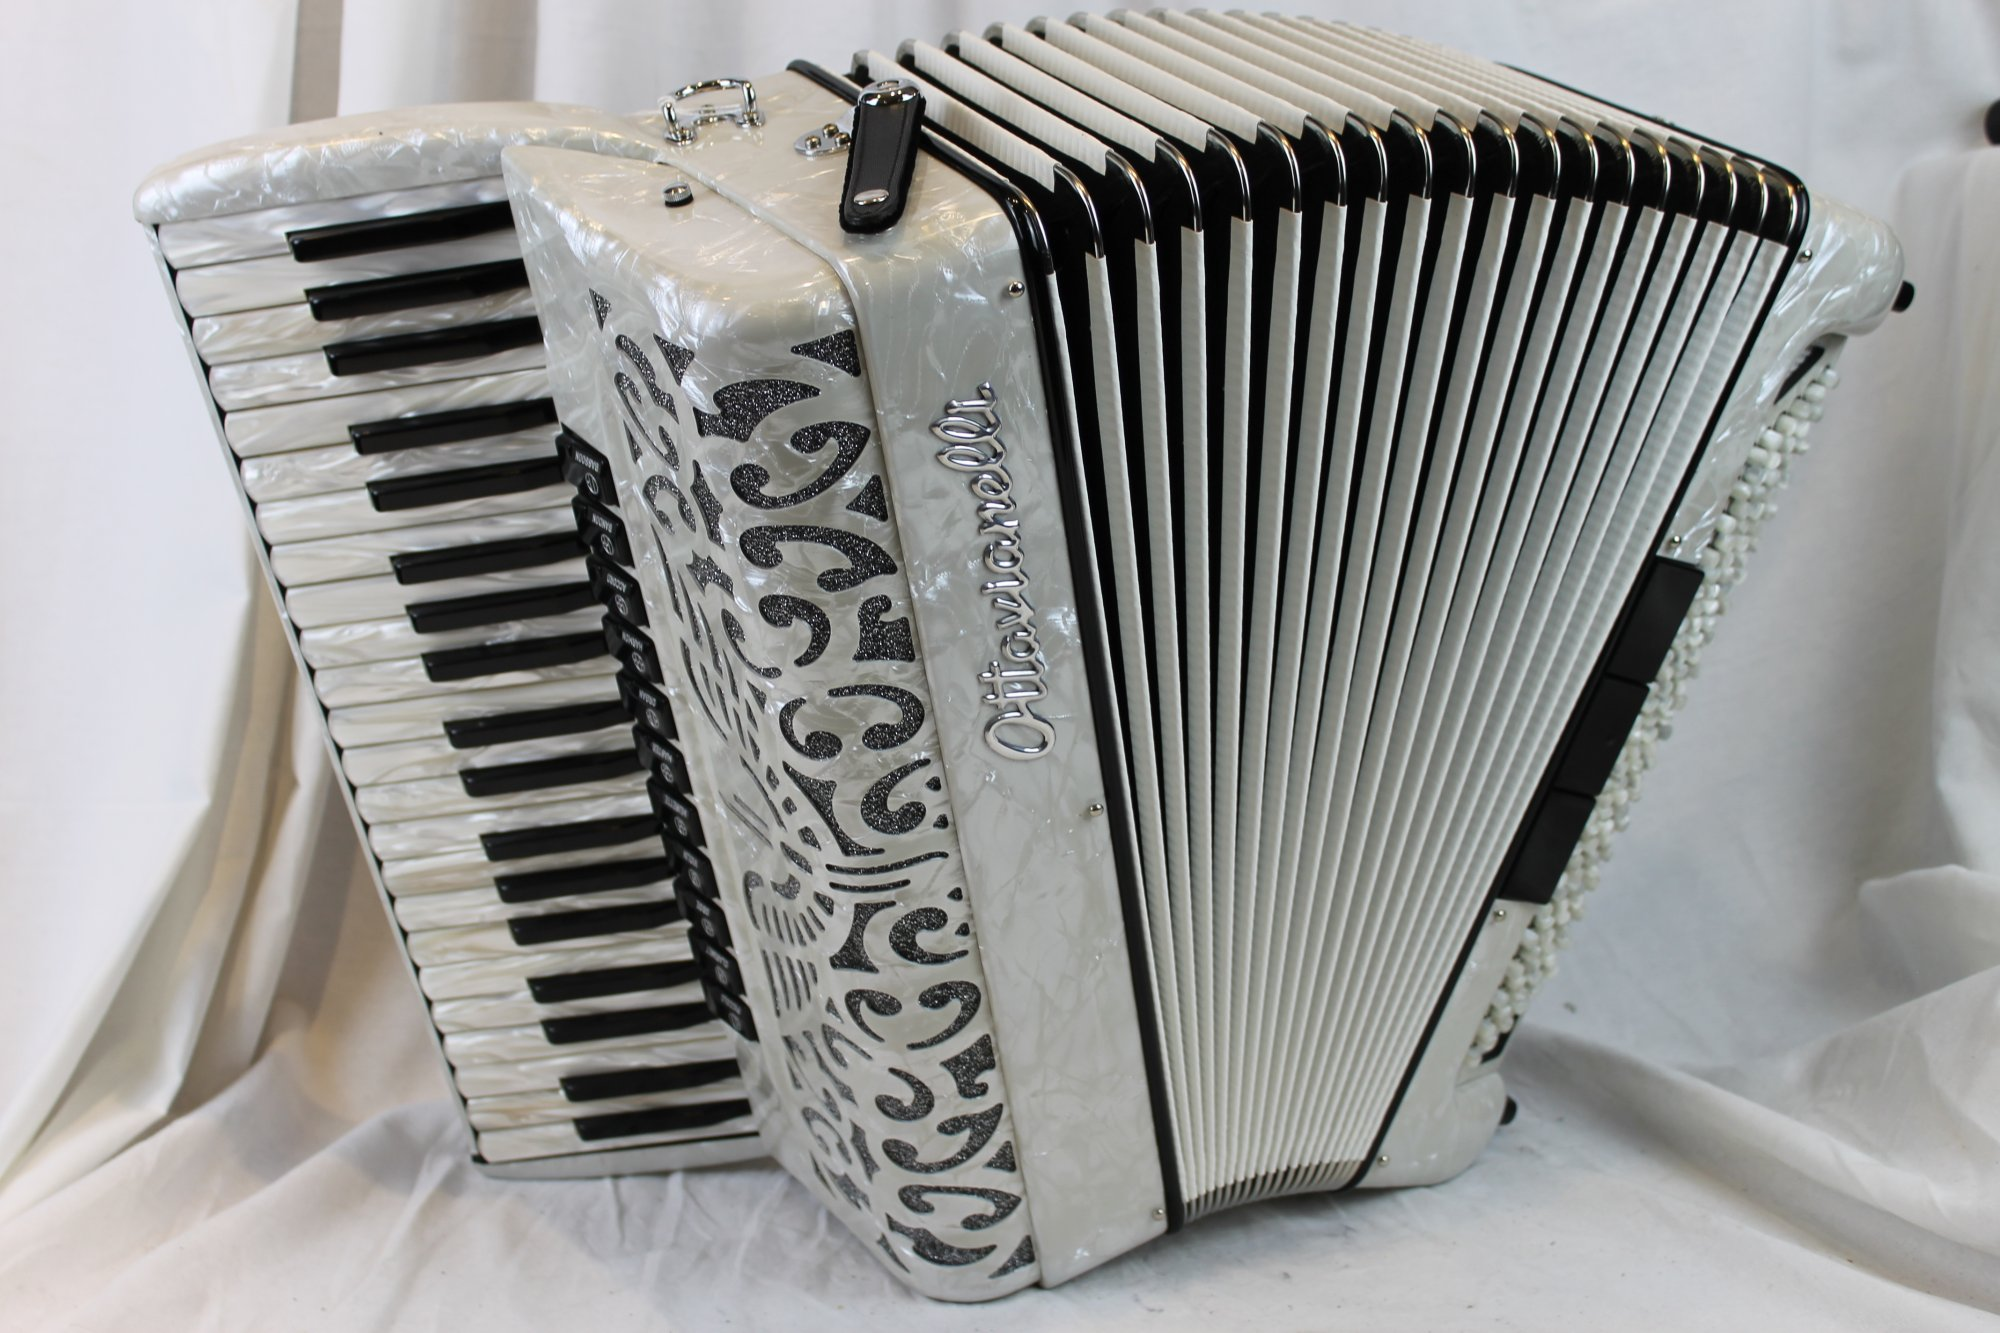 NEW White Ottavianelli Principessa II Piano Accordion LMMH 41 120